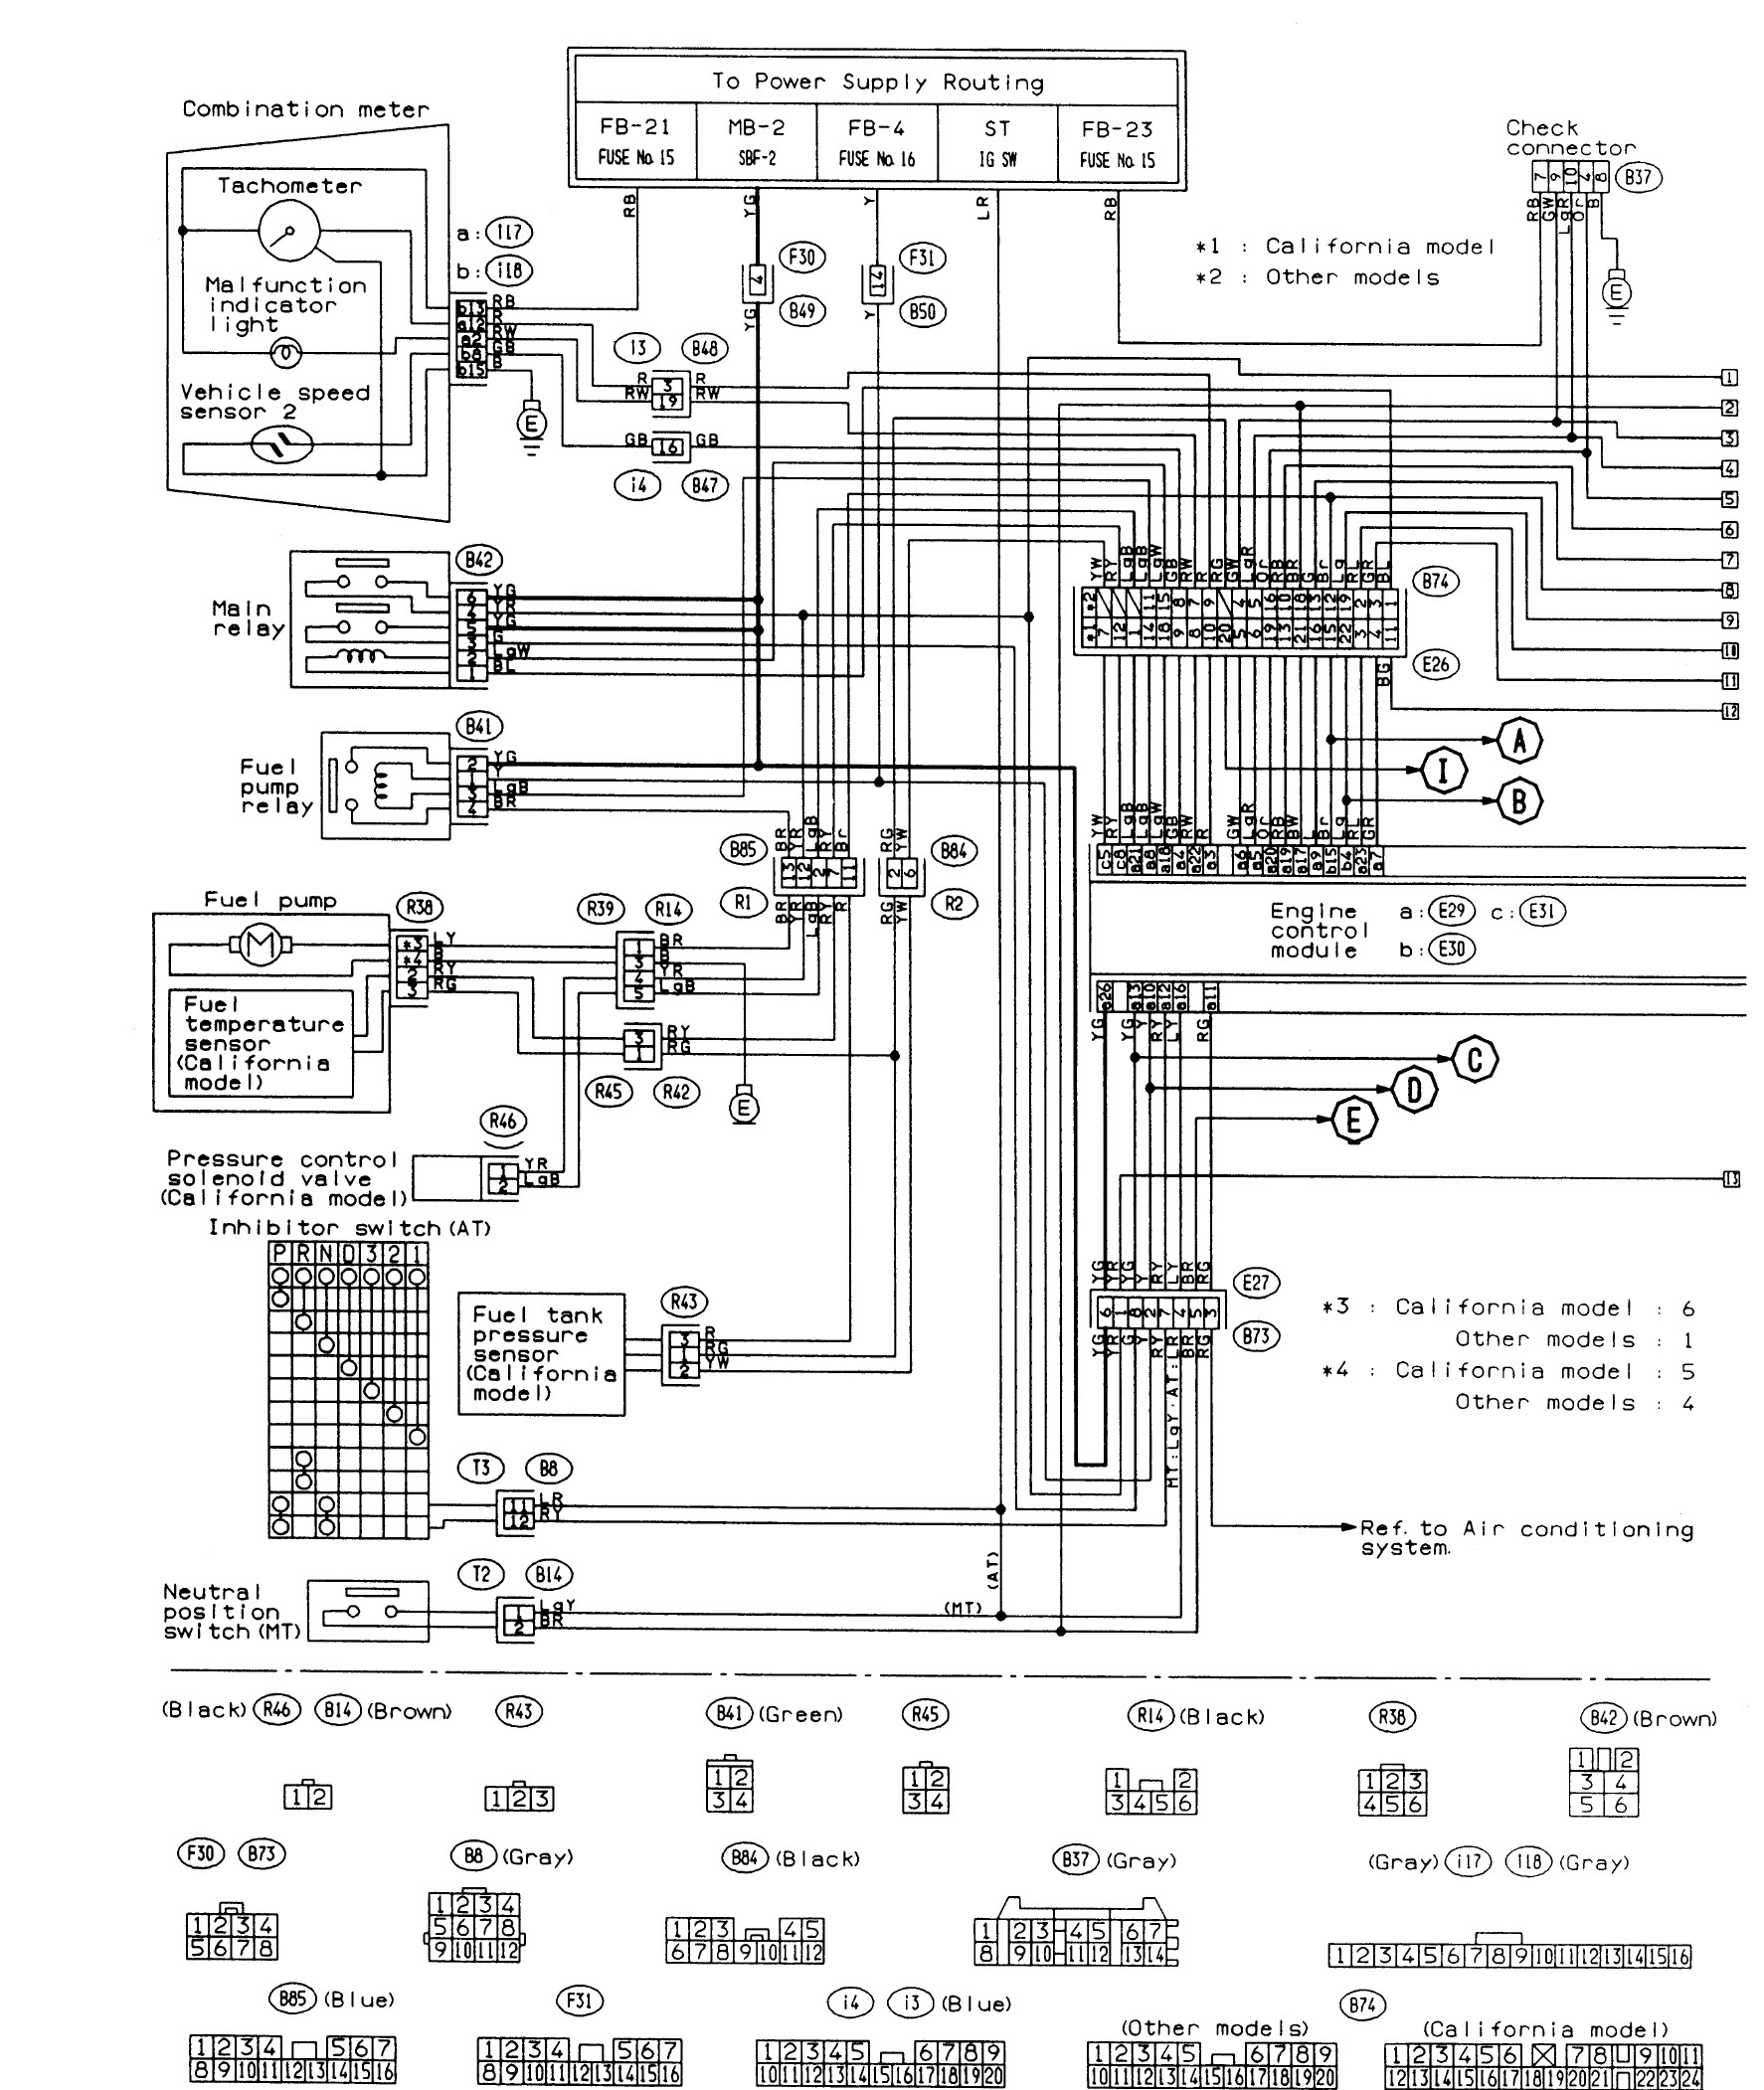 93 Subaru Legacy Wiring Diagram together with Wiring Diagram Subaru Impreza Wrx 2004 likewise 1997 Subaru Legacy 2 5 Gt Fuse Box Label further 2016 Subaru Impreza Radio Wiring Diagram also Ignition Relay Switch Location Subaru Outback Click Image Larger Version. on 1999 subaru impreza outback wiring diagrams